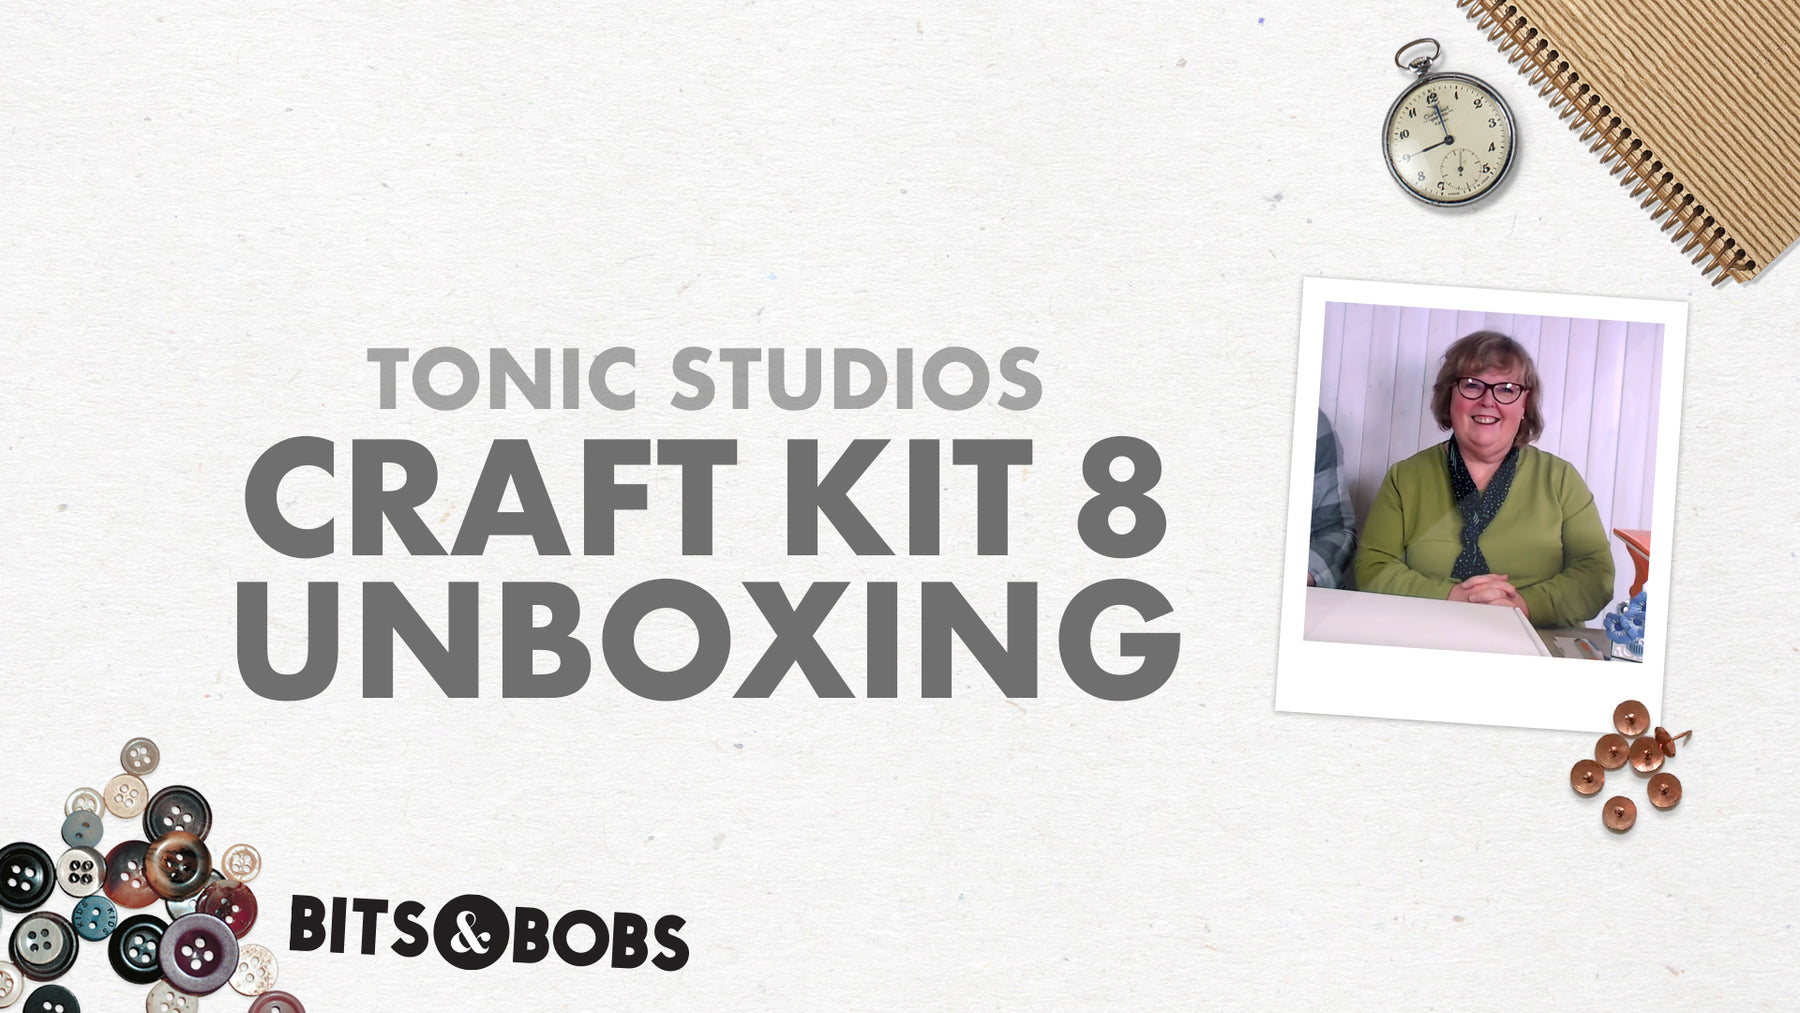 Tonic Craft Kit 08 - Trinket Draw Live Unboxing - Alison Whelan